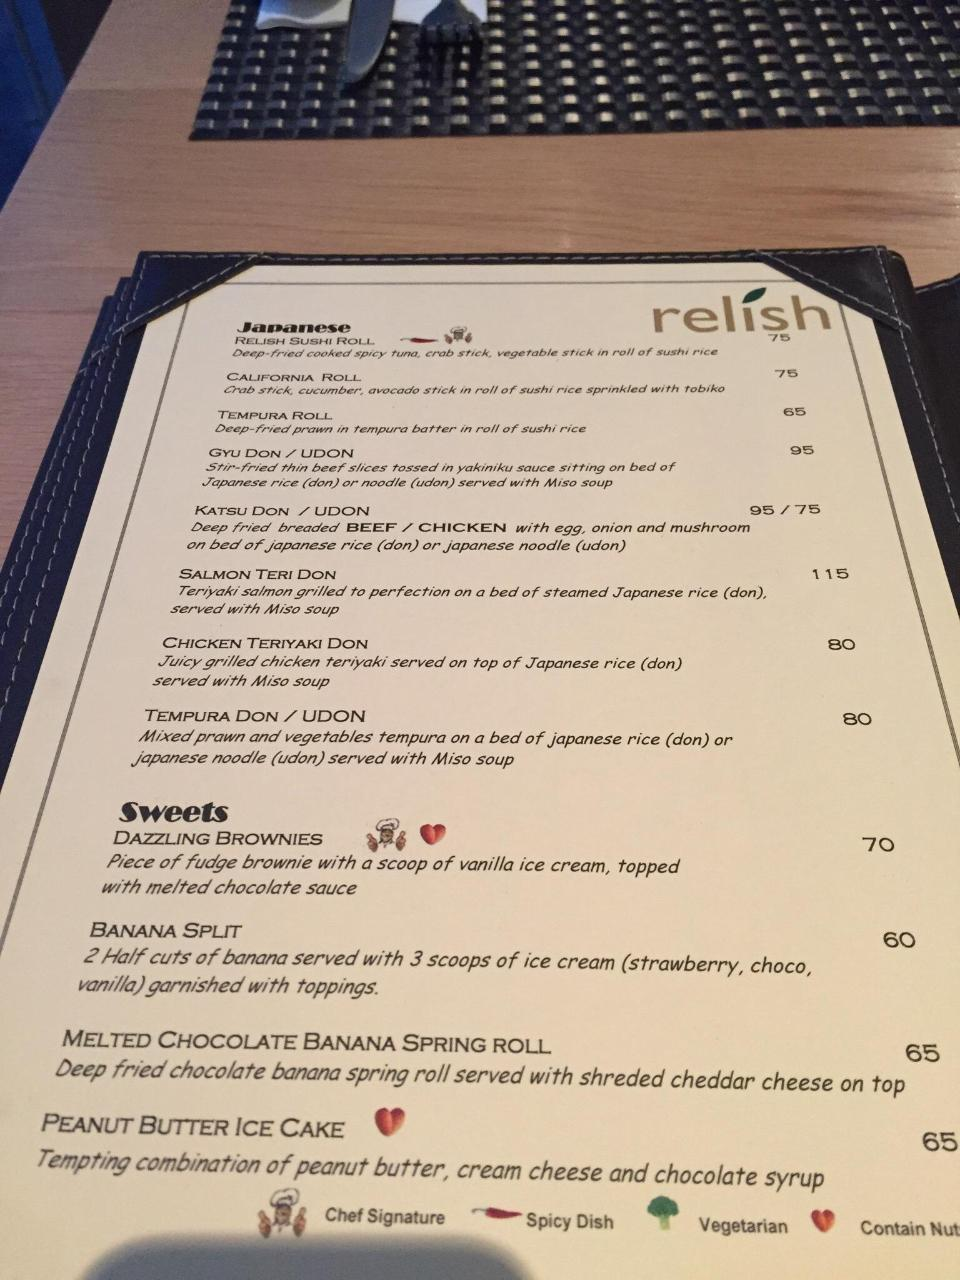 Menu Relish Restaurant